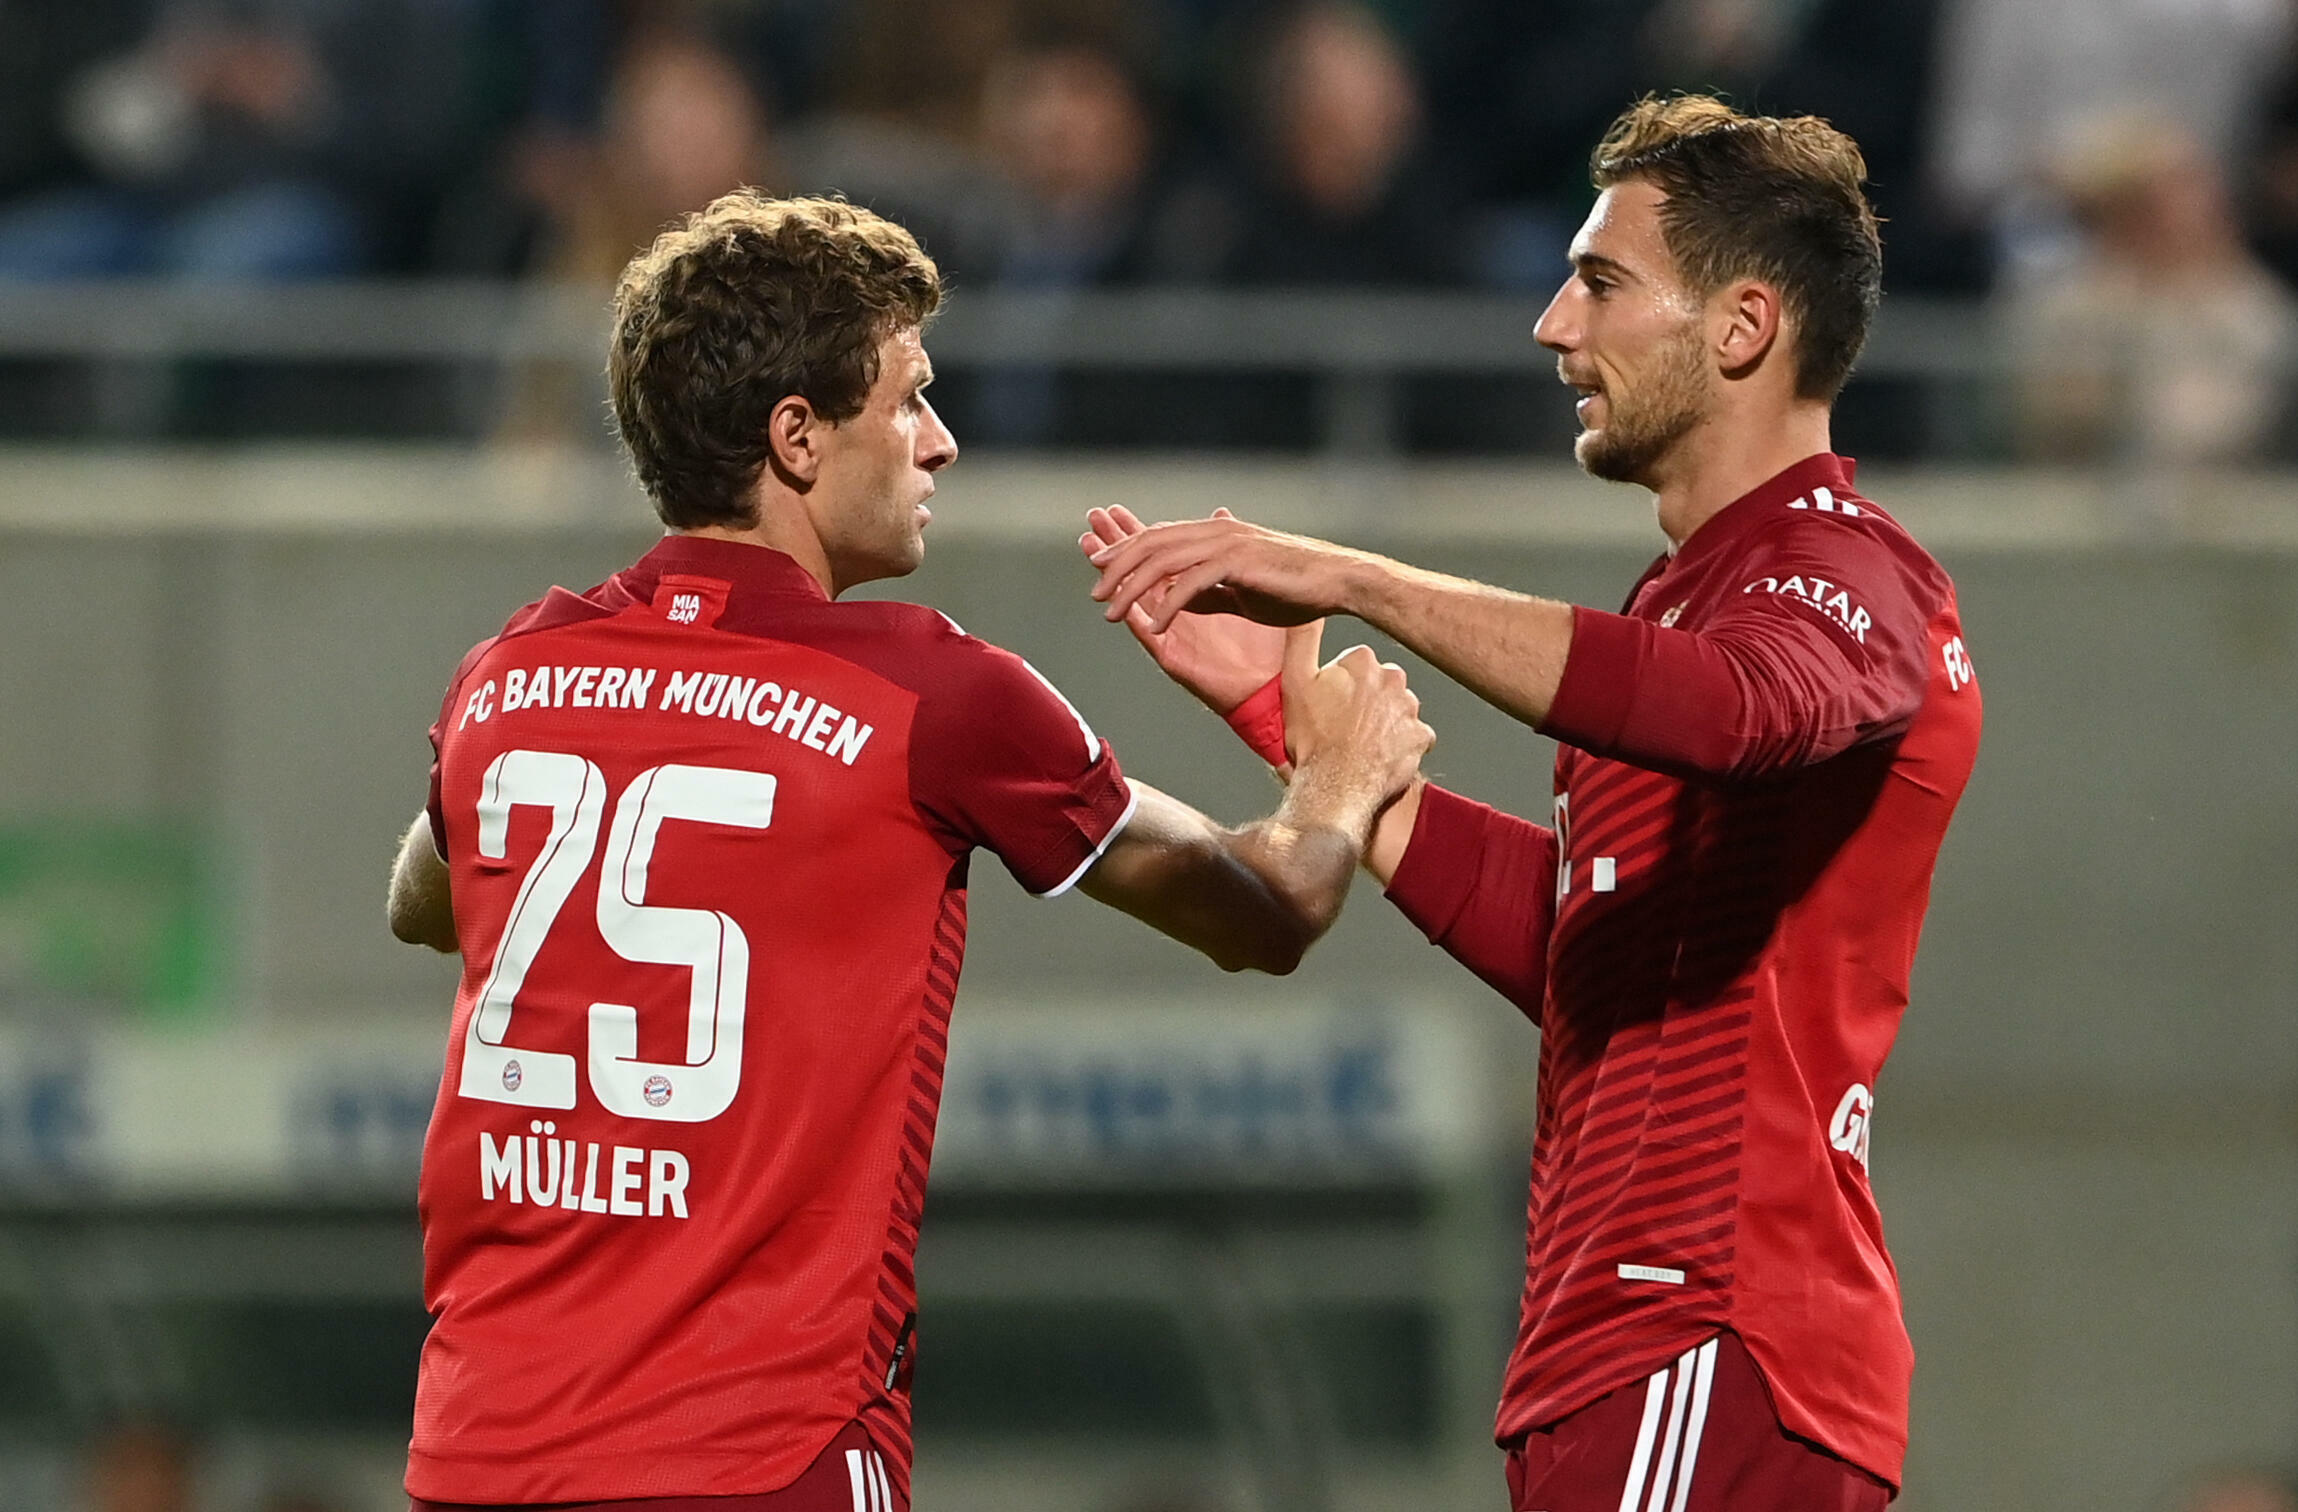 Ten-man Bayern cruise past Fuerth to open up three-point lead